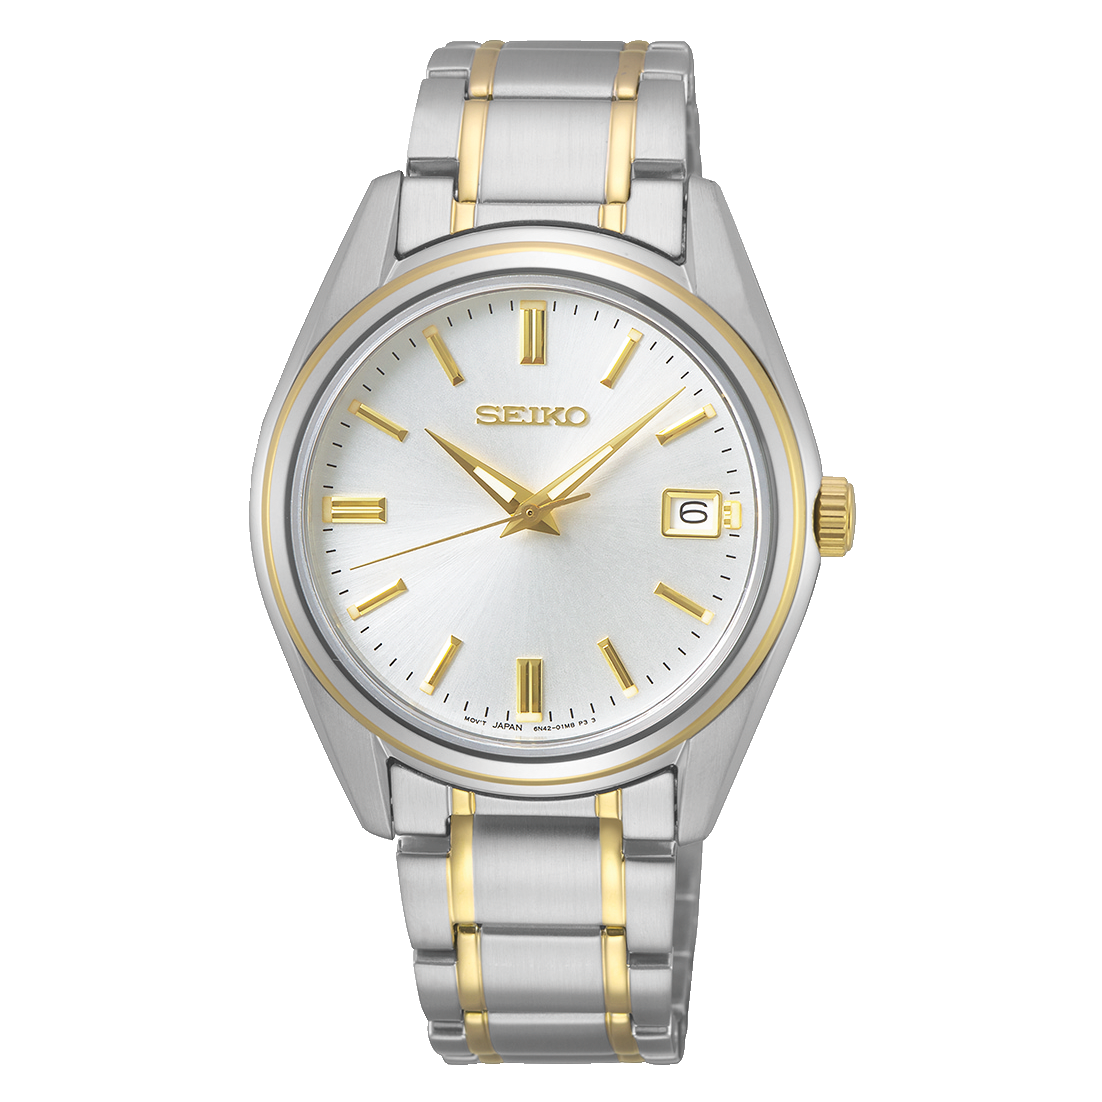 Gents Seiko Watch SUR320P